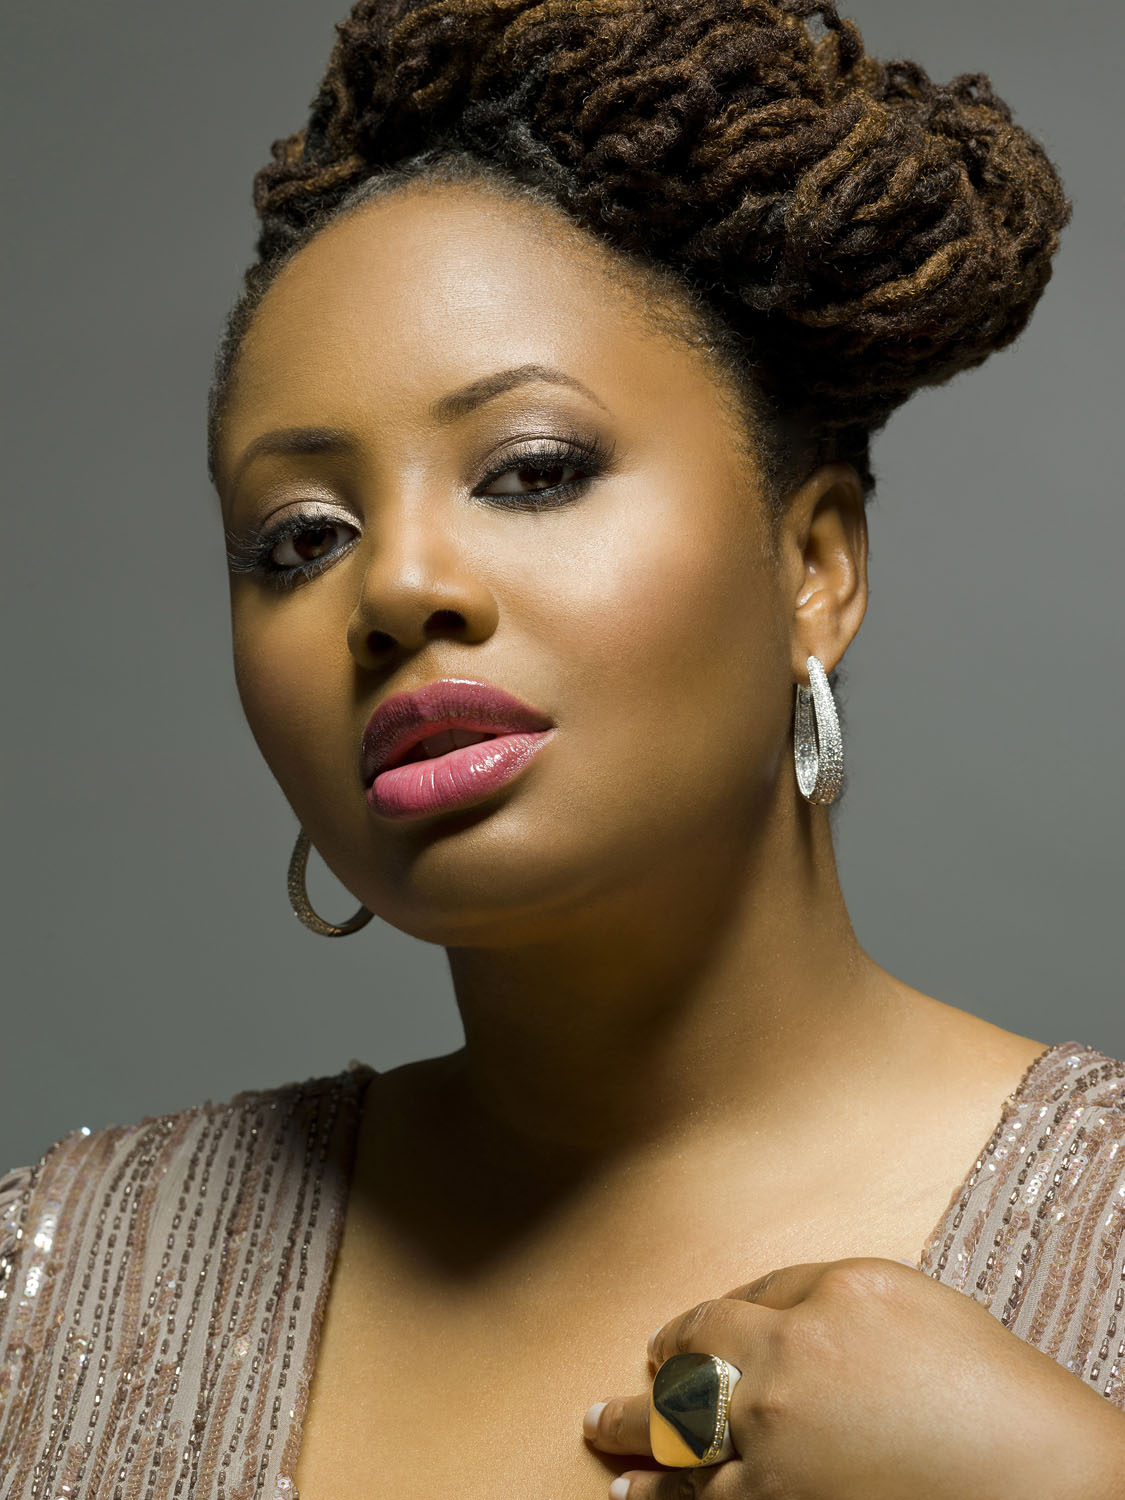 Pictures Of Lalah Hathaway photo 19